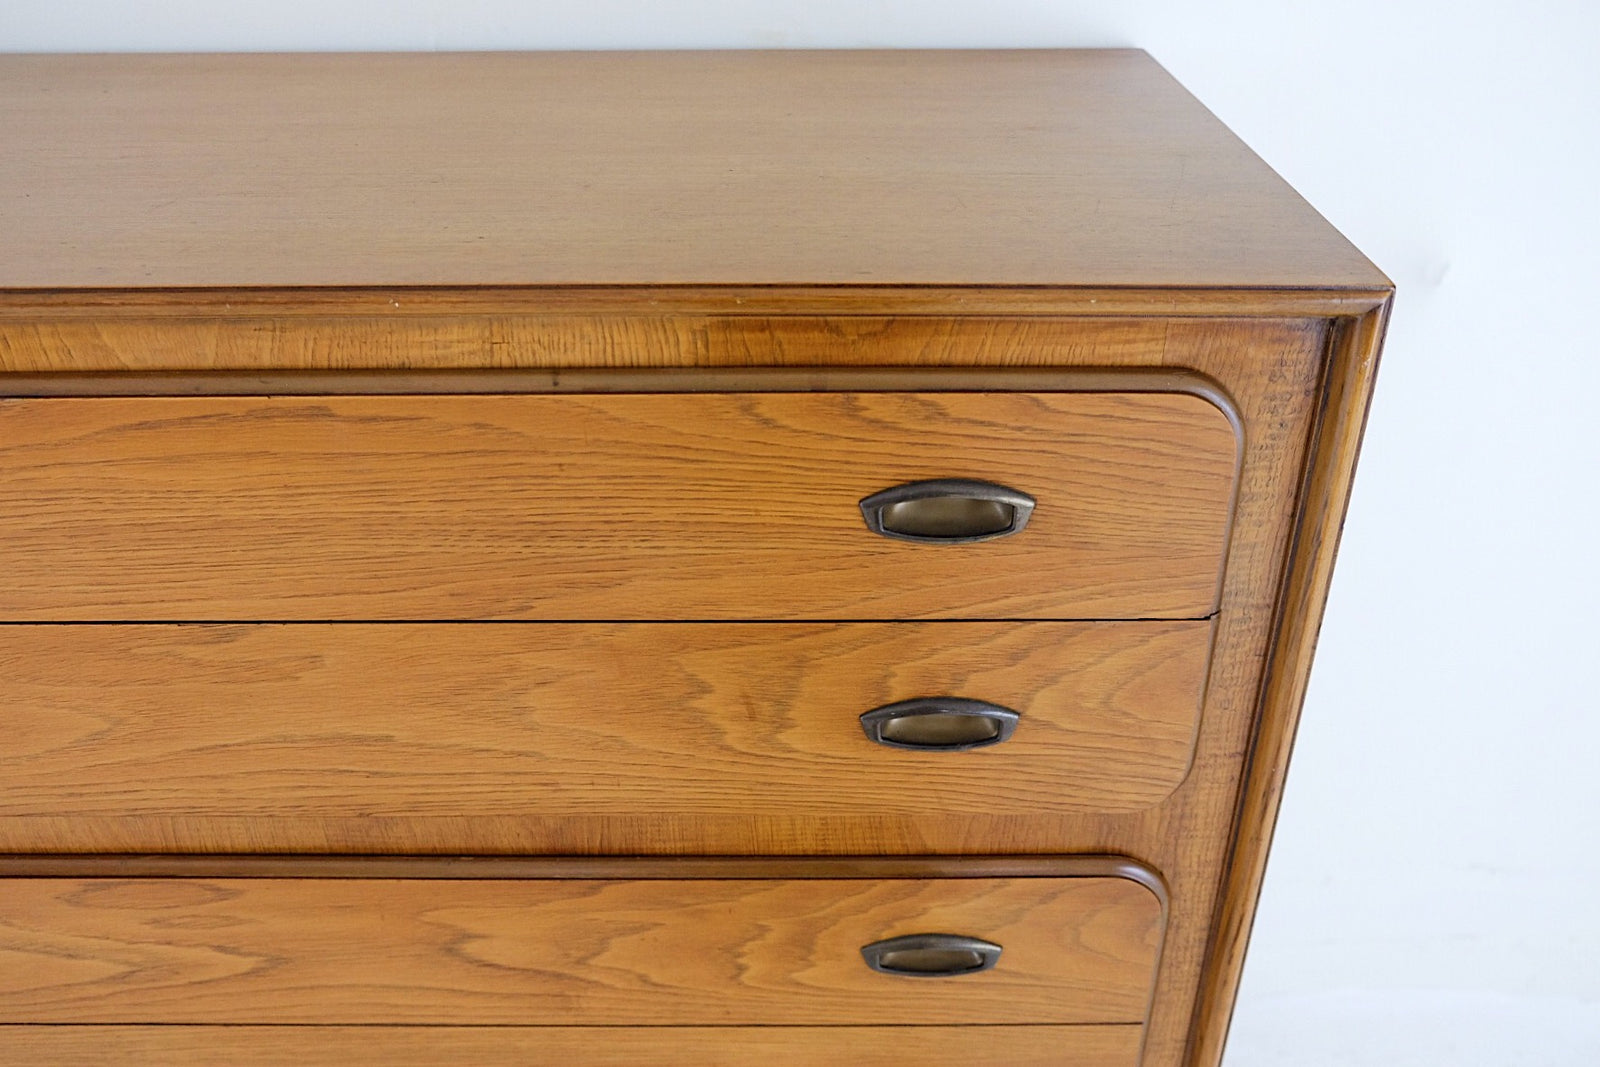 National Furniture Co. Mt Airy North Carolina Tall Dresser Brass Inset Handles Rounded Brass Capped Legs Five Drawers